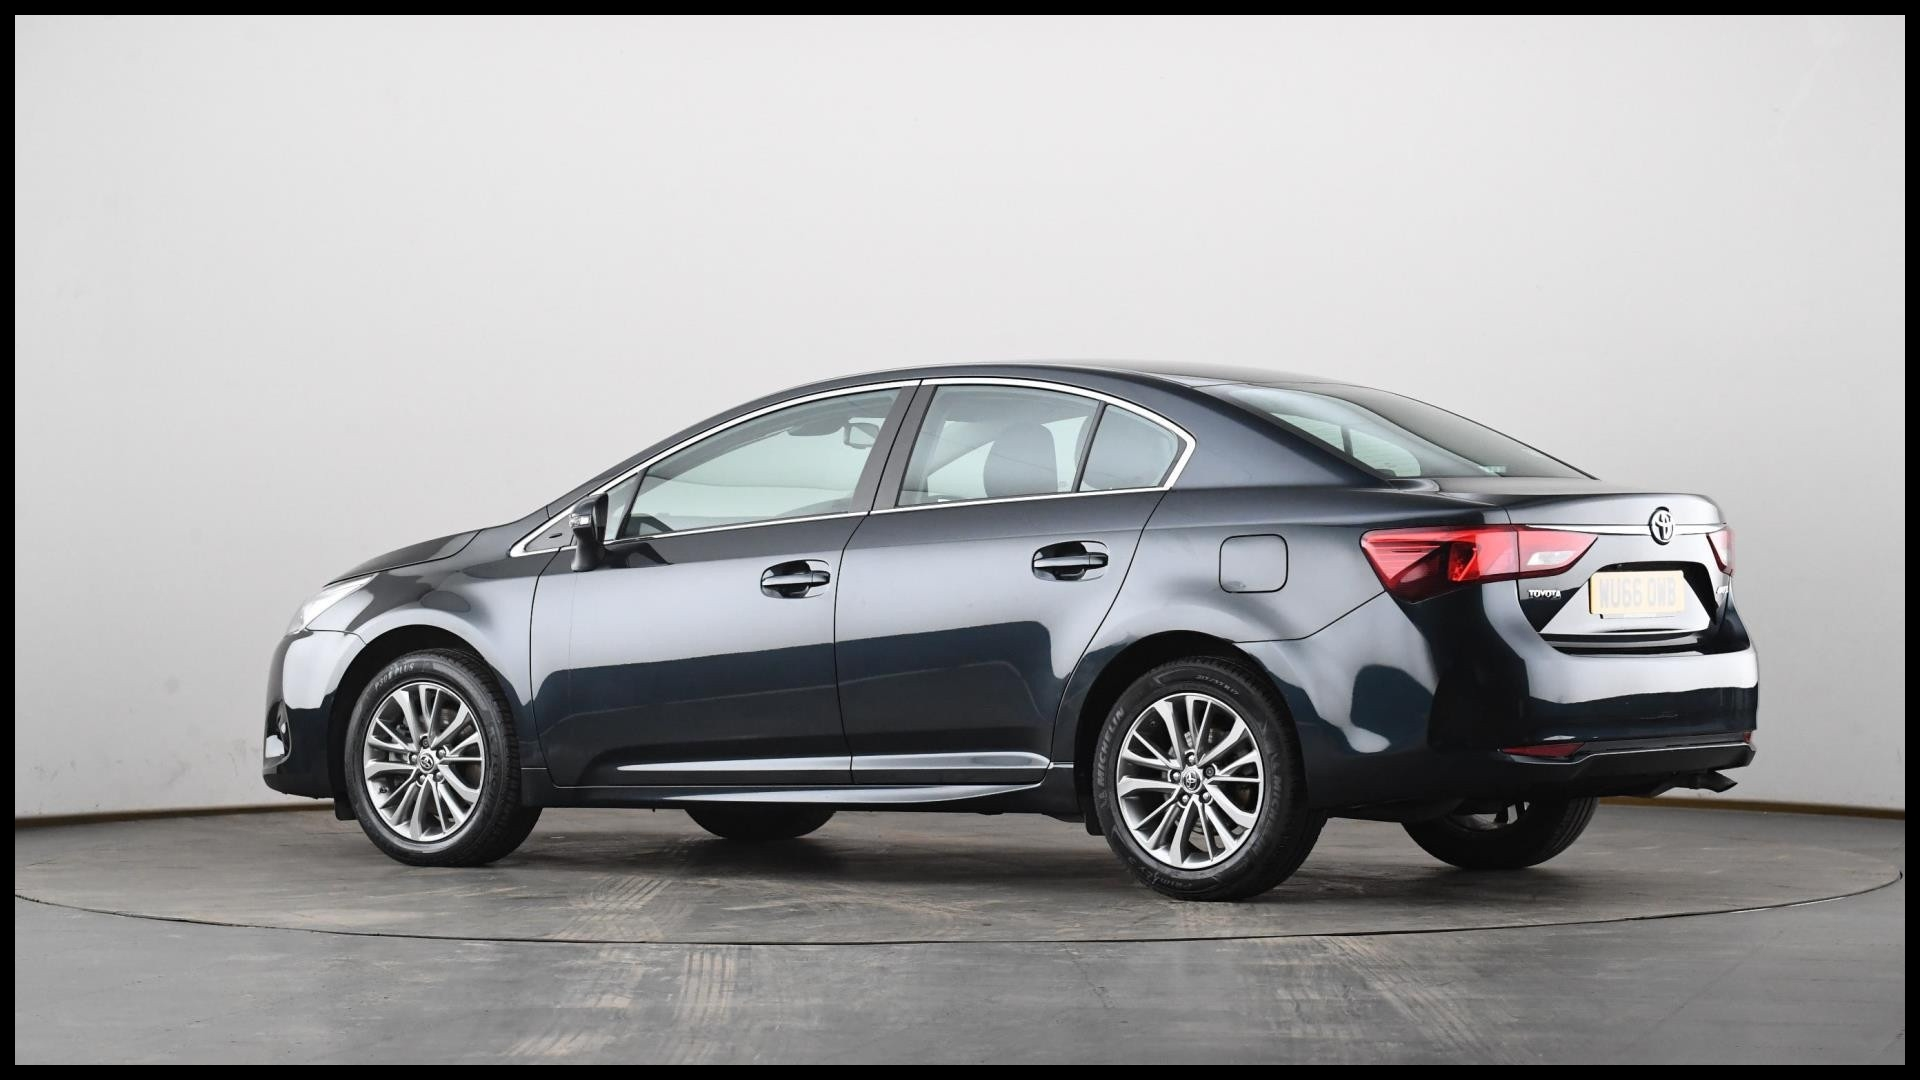 Best Phev Special Trd Camry 2018 toyota Grey Best Used toyota Avensis 2 0d Best Phev Techinfo